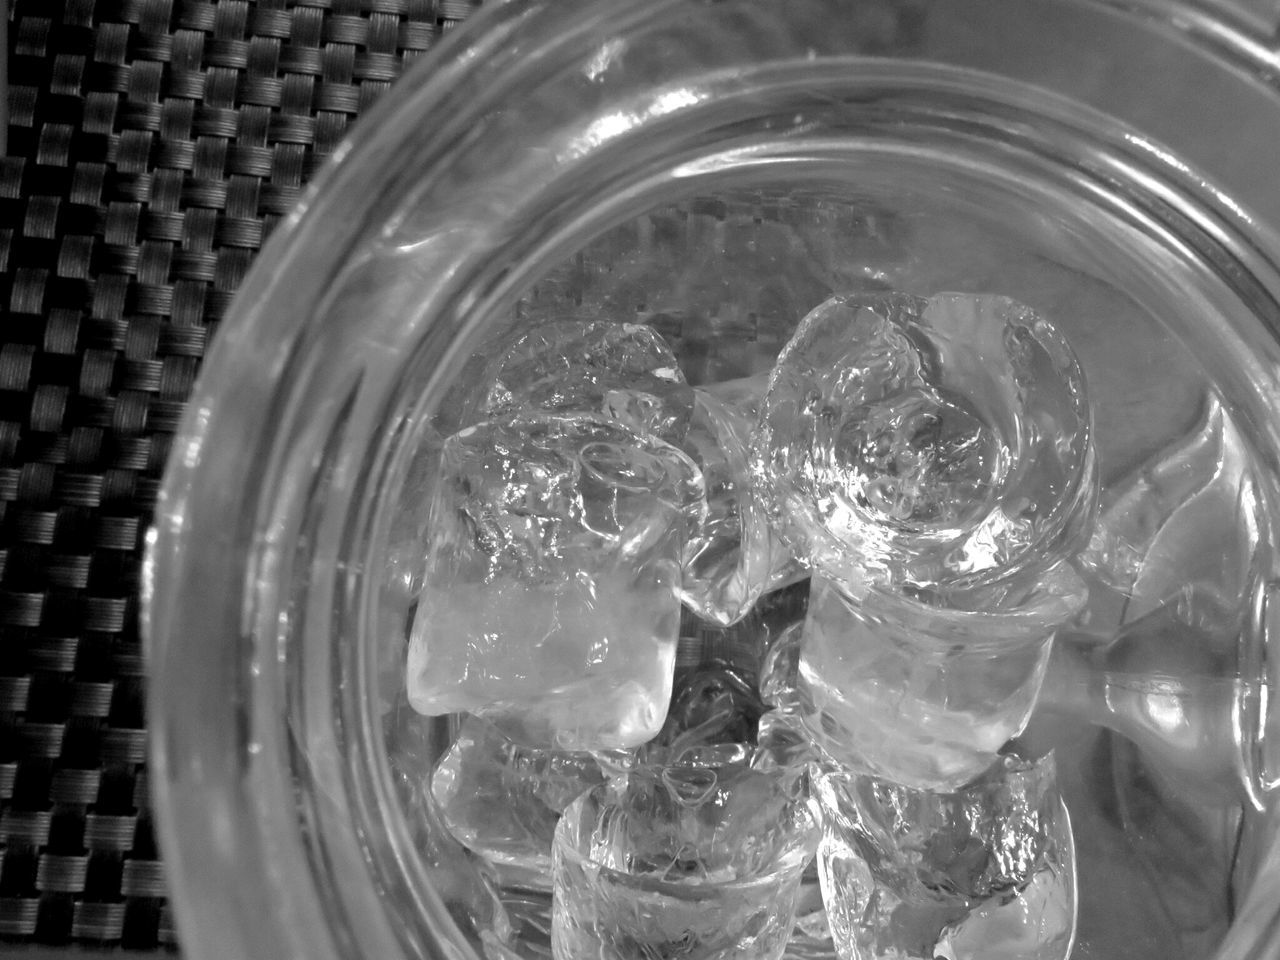 Ghiaccio Drink Learn & Shoot: Simplicity Texture And Surfaces Blackandwhite EyeEm Best Shots Light And Shadow Filmcamera Getting Inspired Macro Beauty Minimalobsession Canon Canonphotography Ice Cold Glass Drink Photography Memory Monochrome White Album EyeEm Eyeemphotography EyeEm Gallery Eyeem Weekend